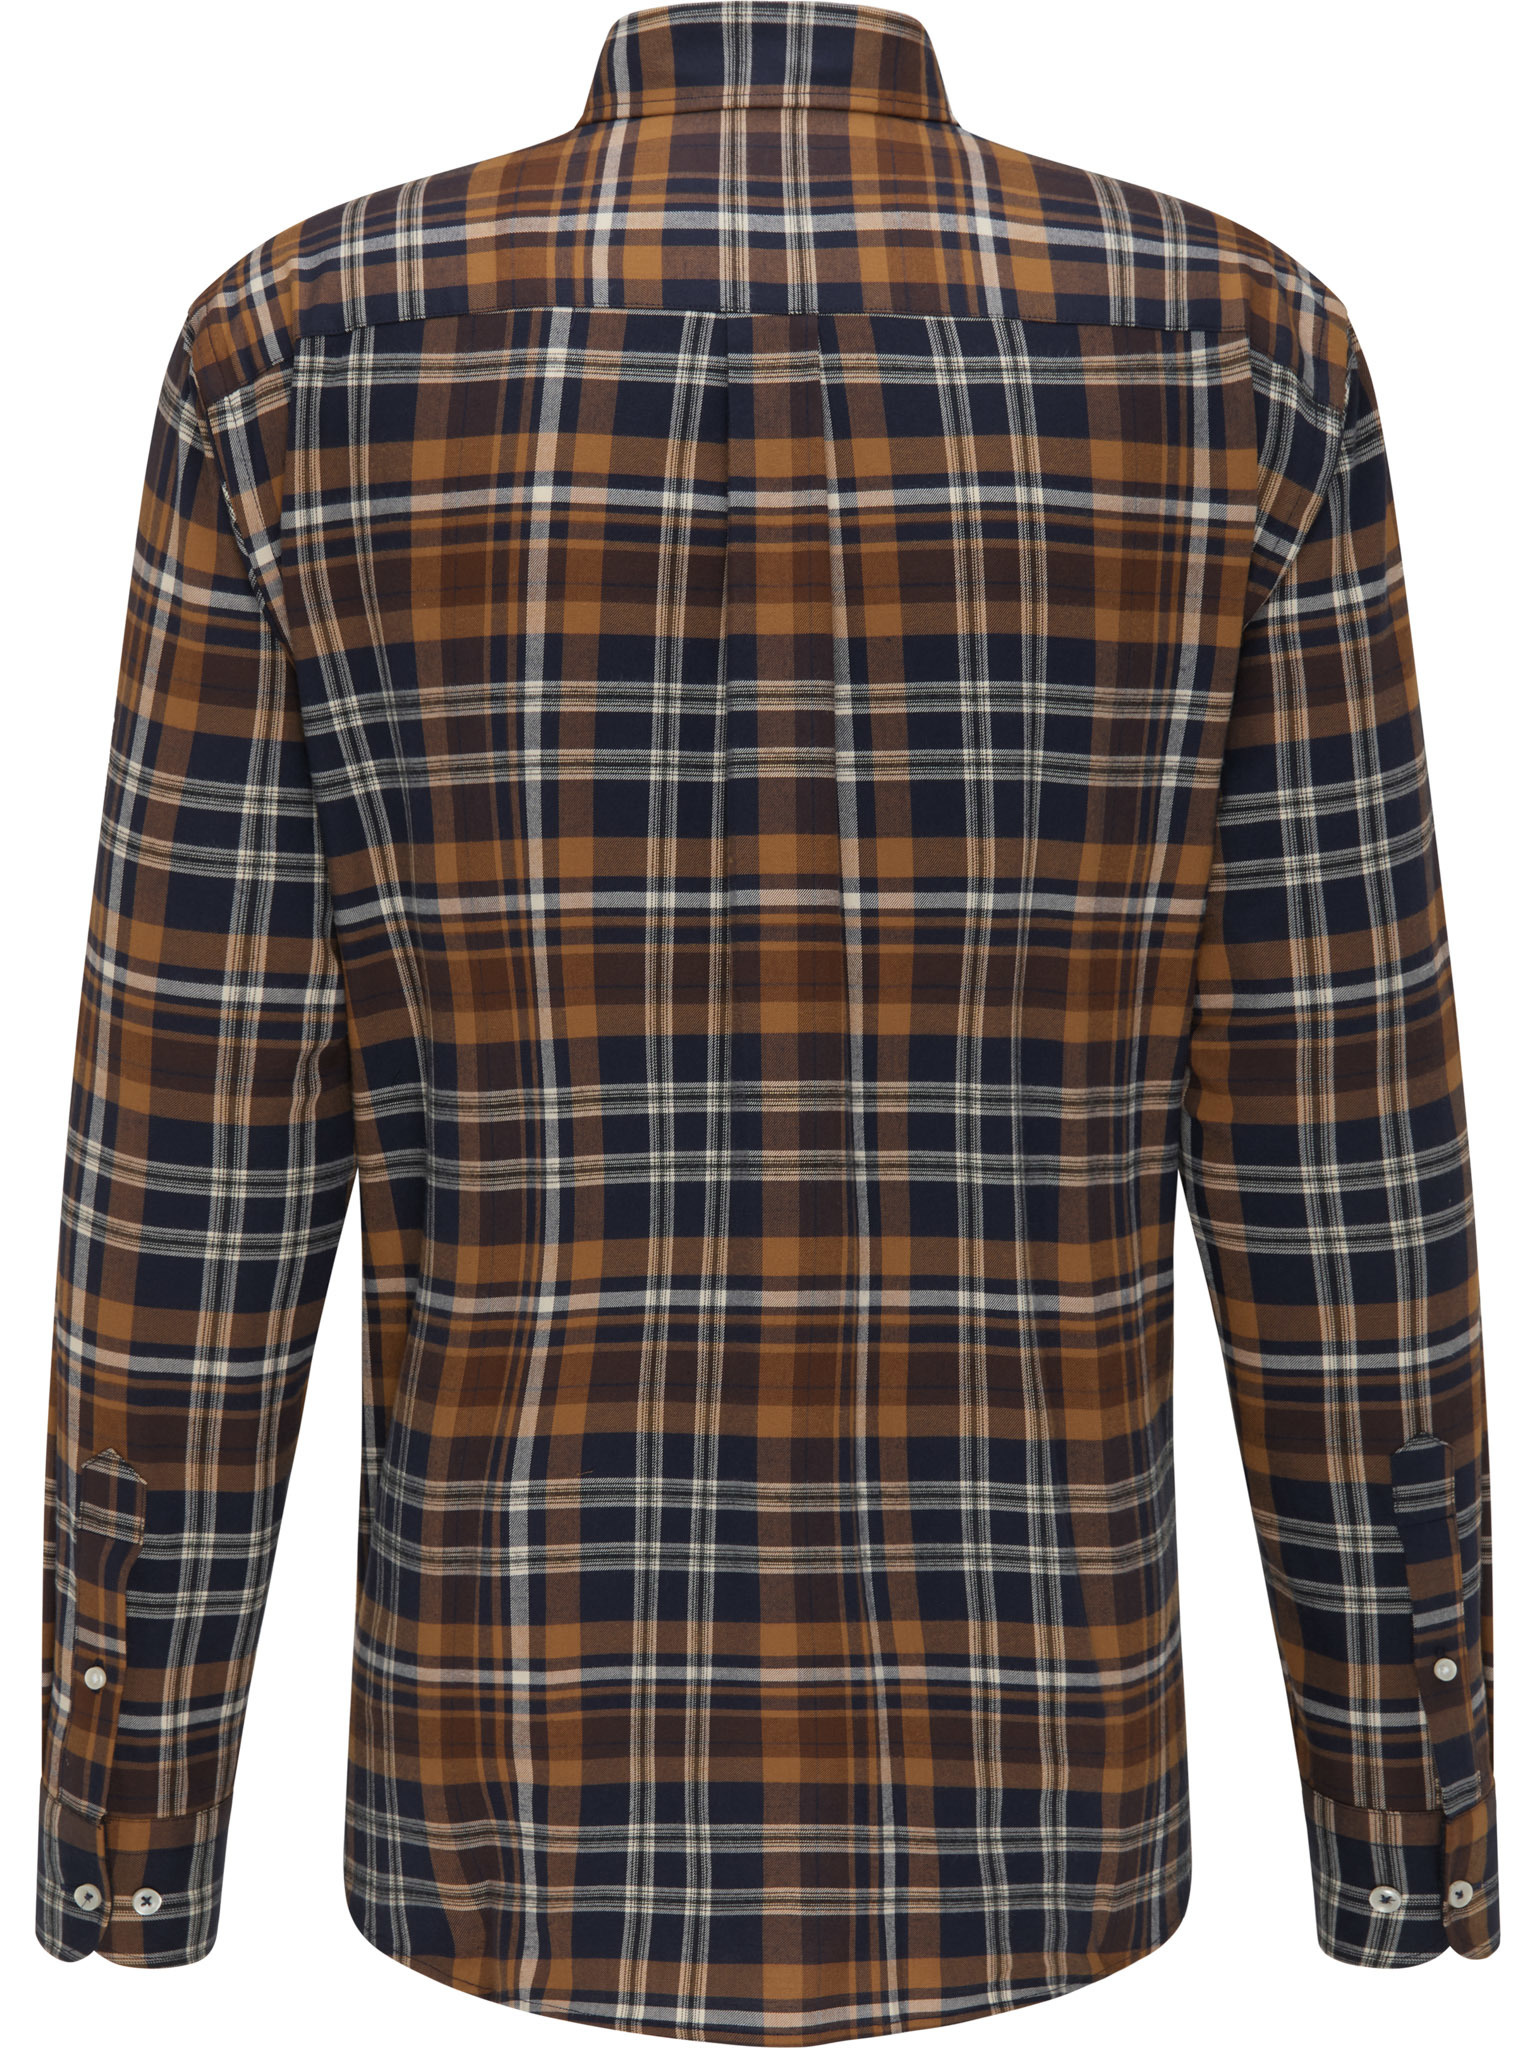 FYNCH HATTON chemise moutard check-2